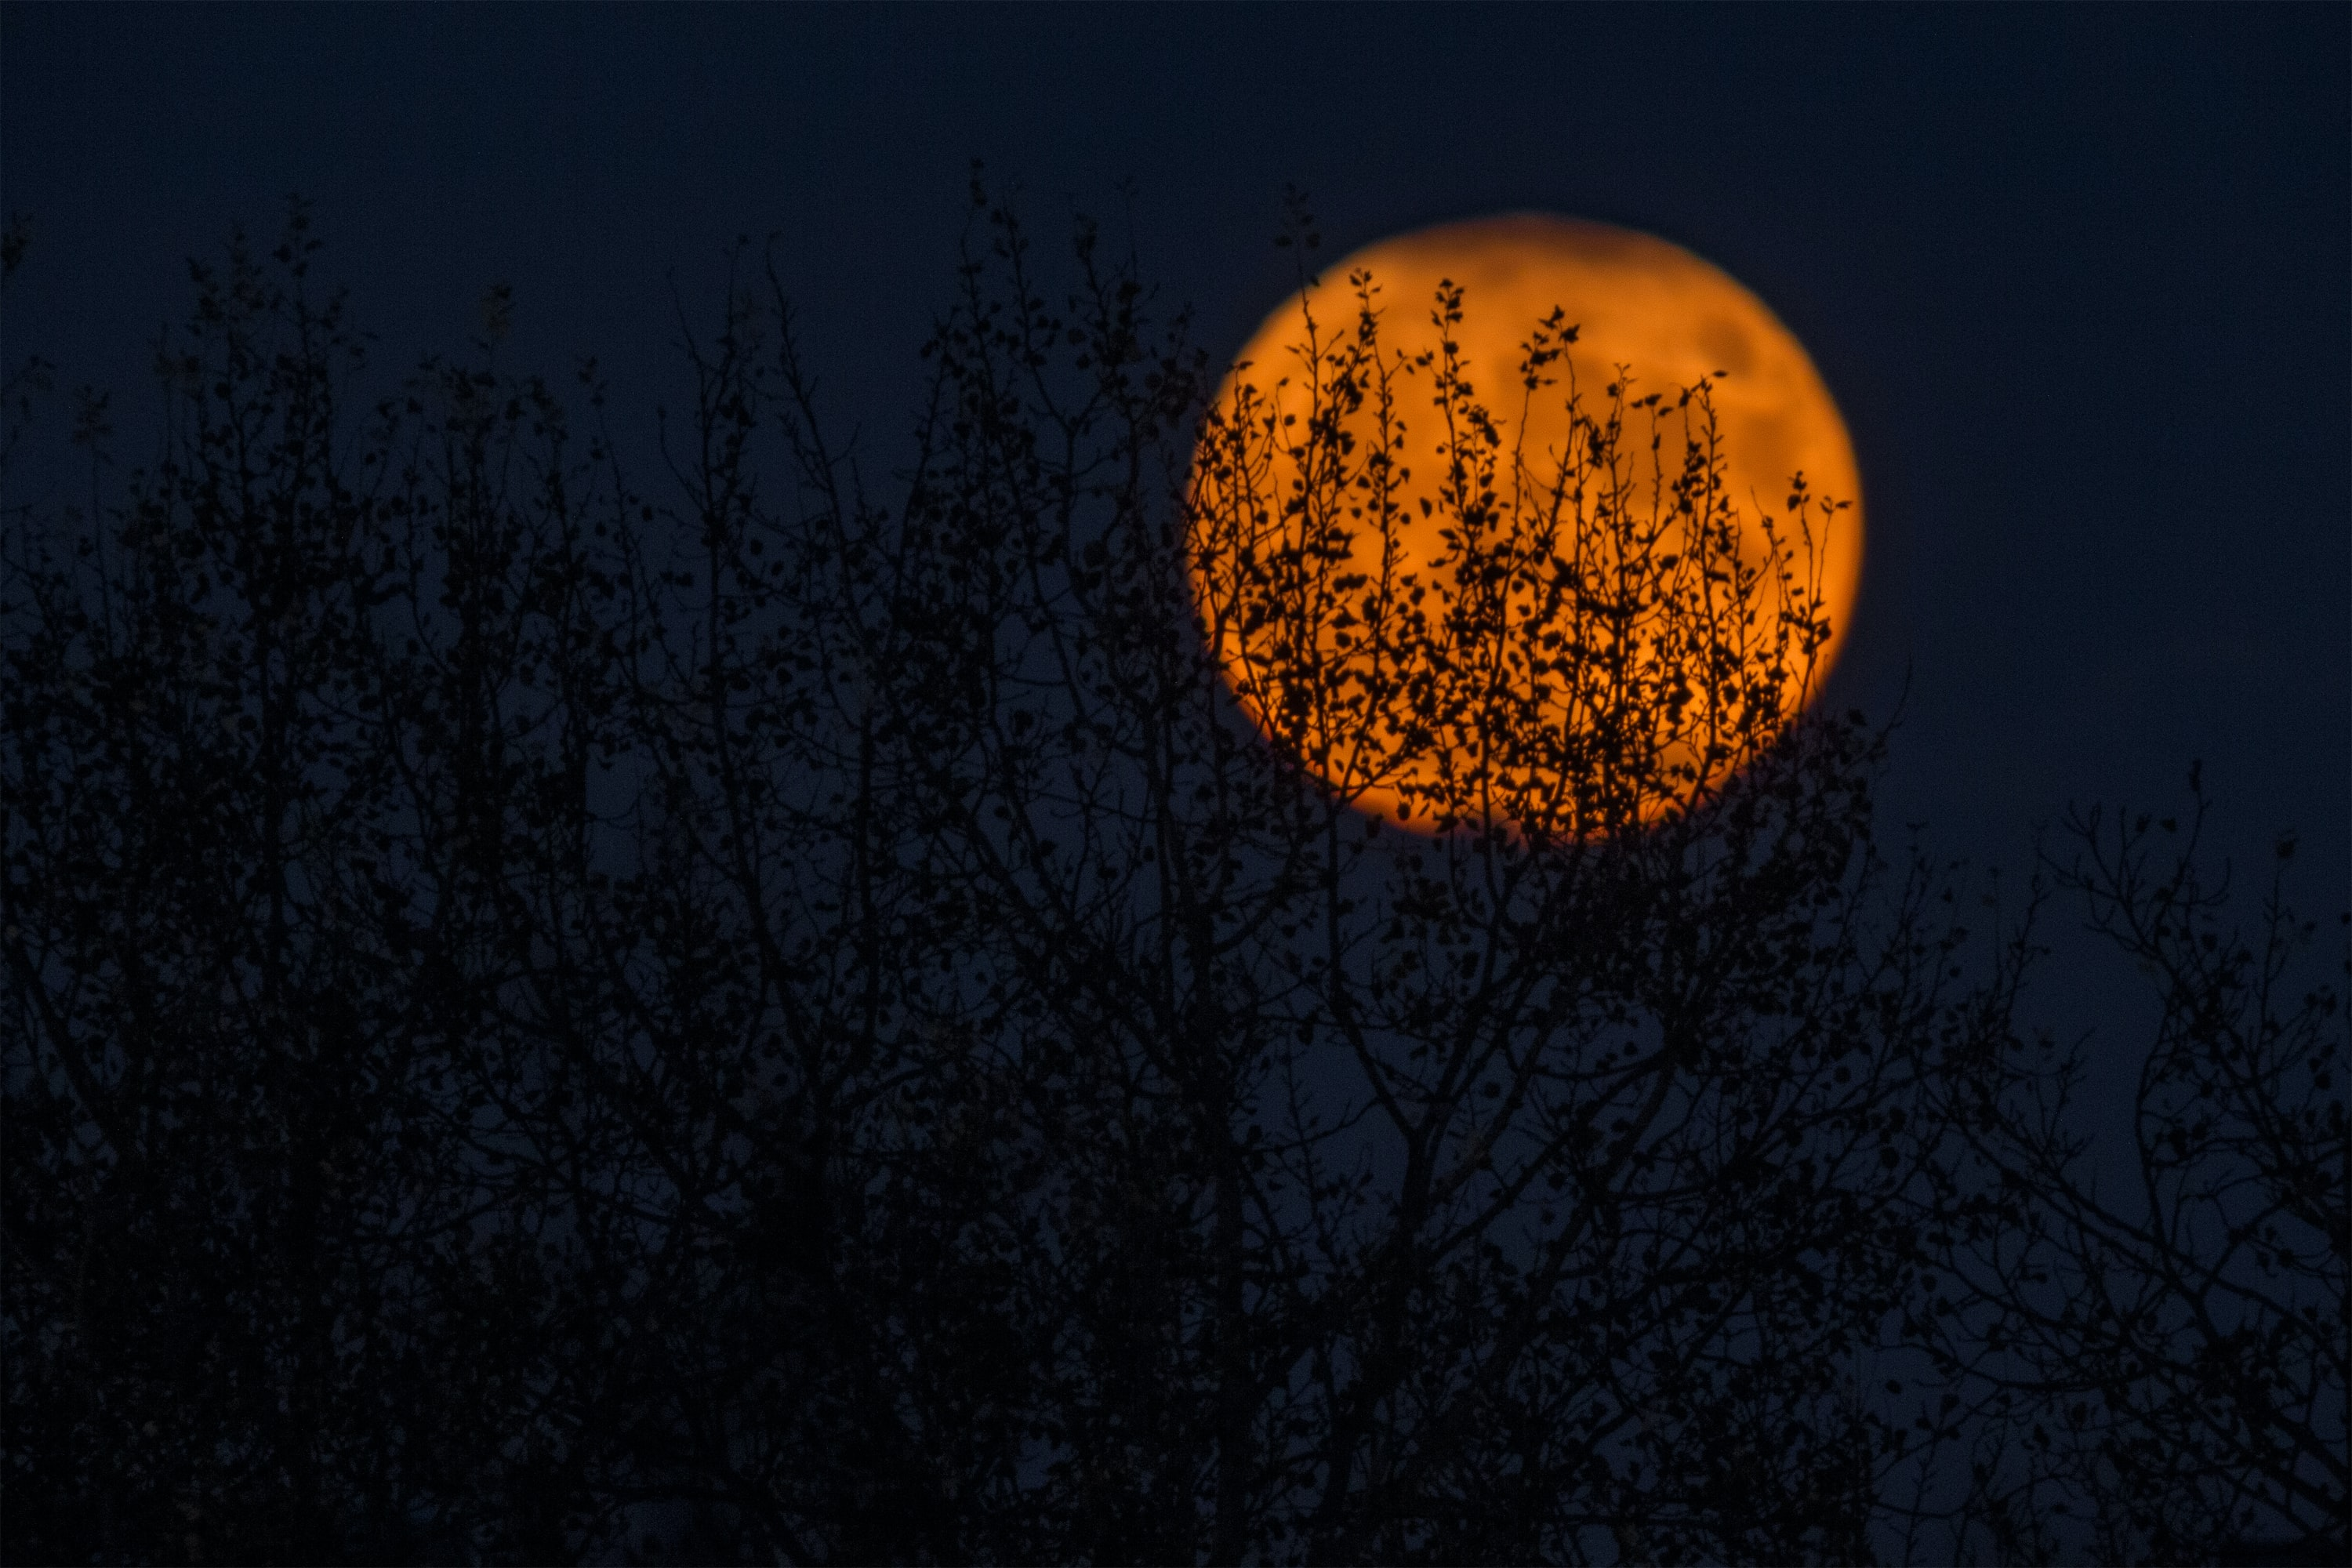 Leafy branches seen silhouetted against an orange moon over Zagreb